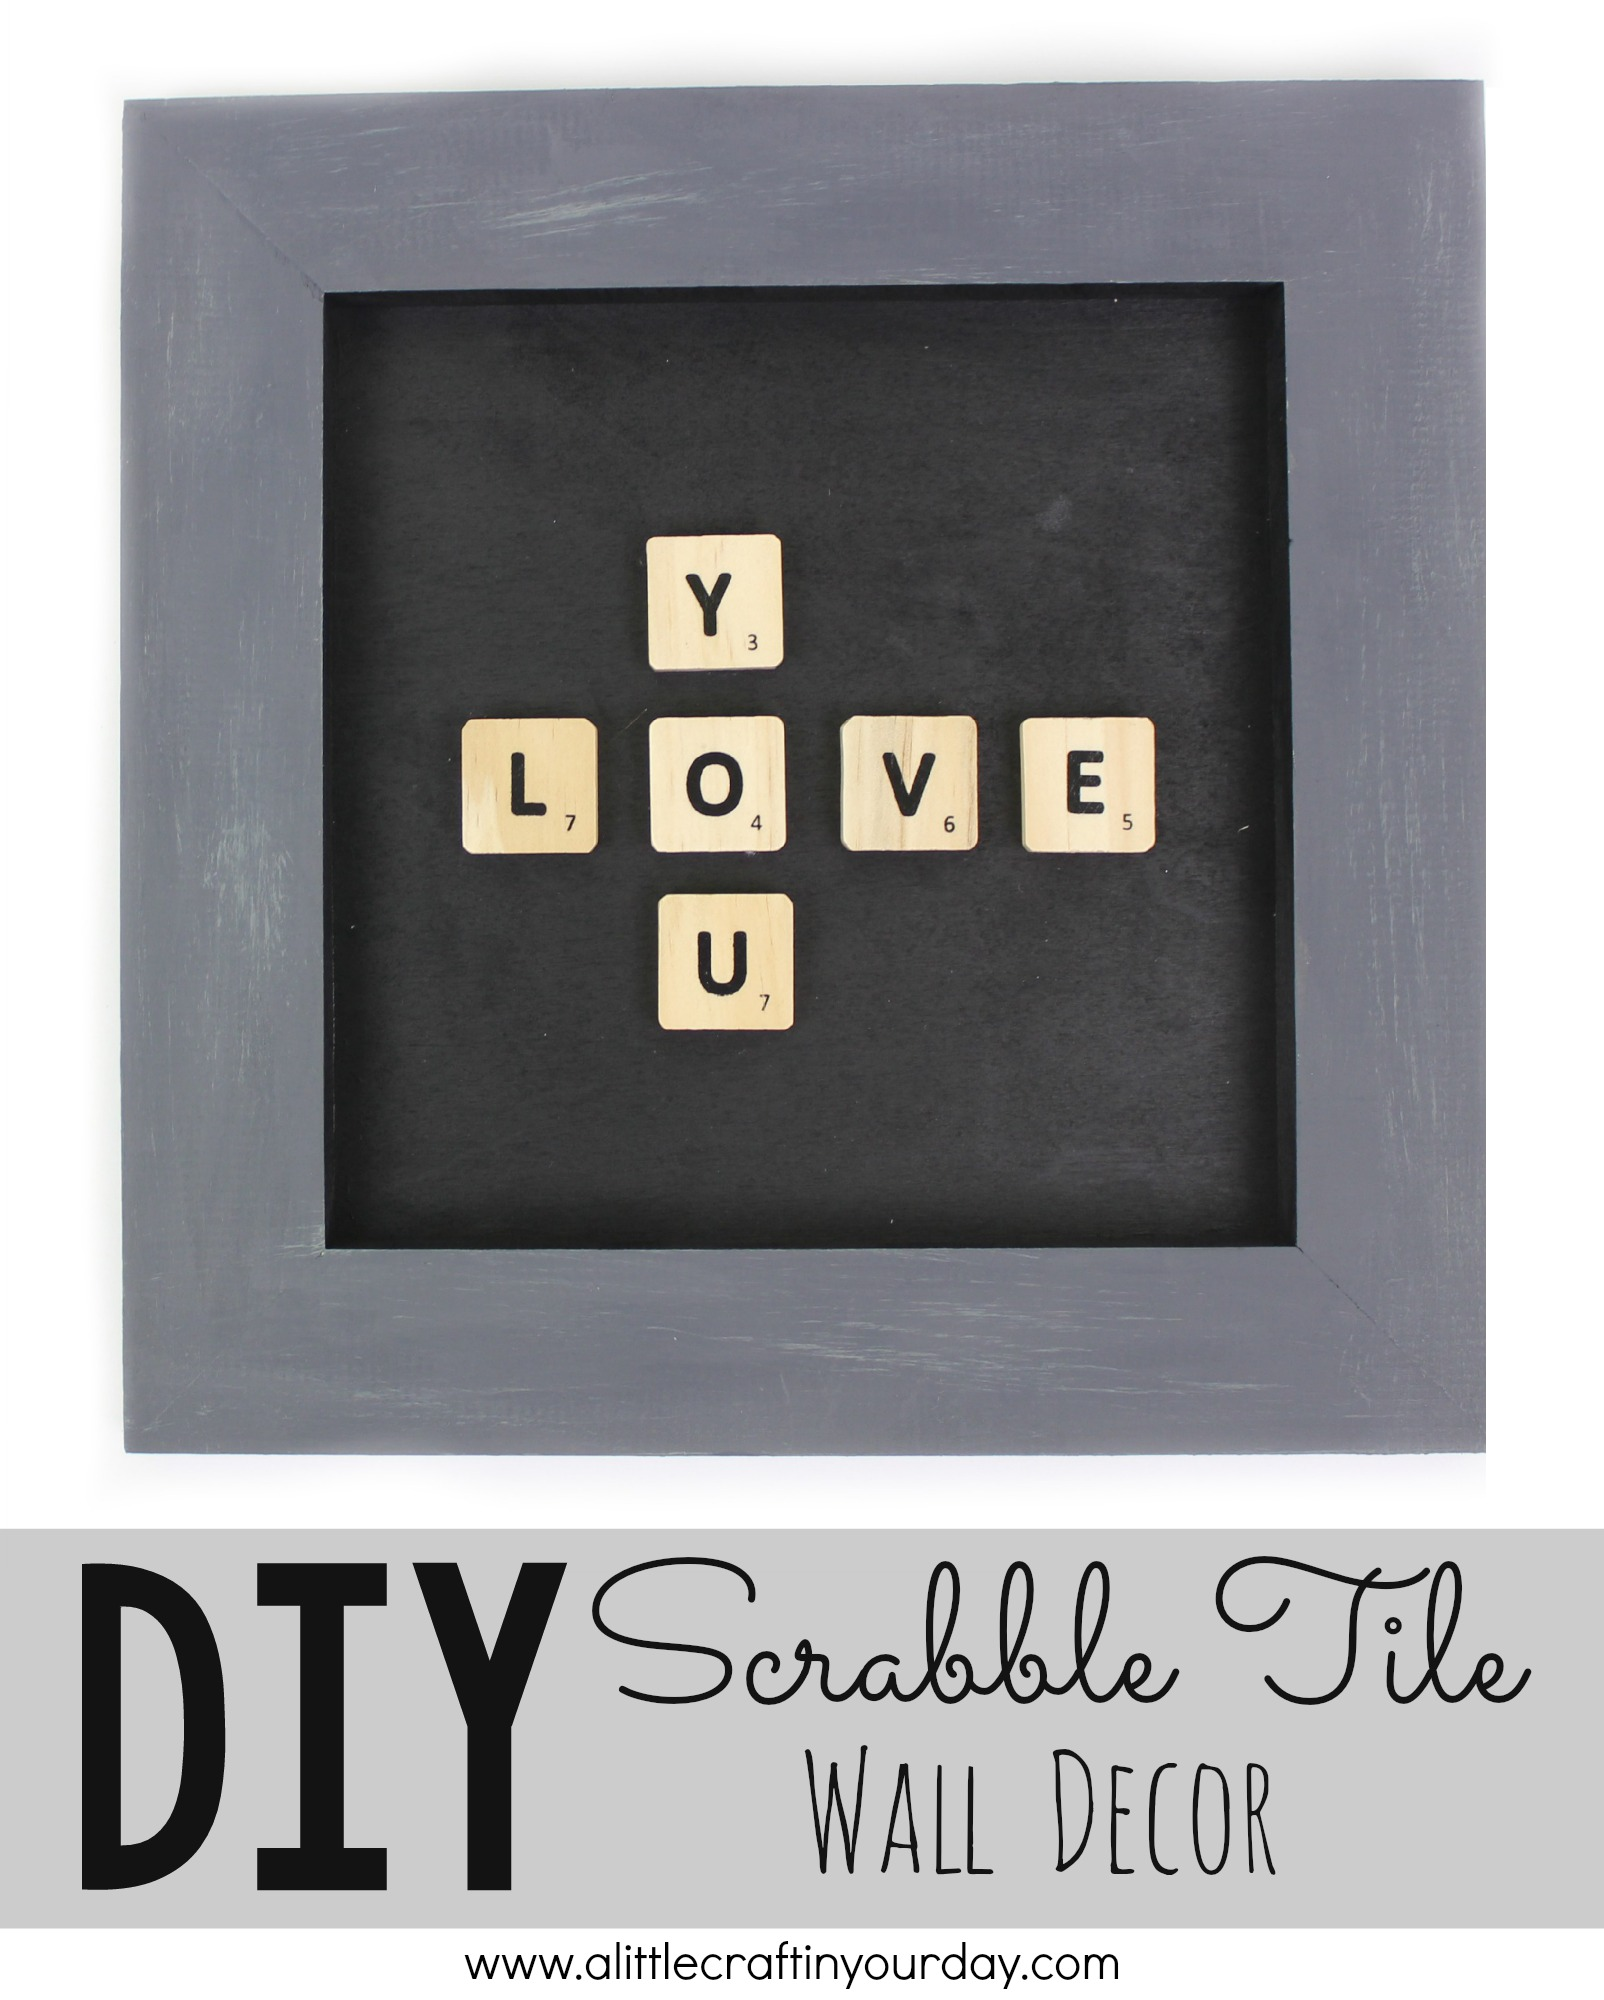 Fun Diy Home Decor Ideas Diy Scrabble Tile Wall Decor A Little Craft In Your Day